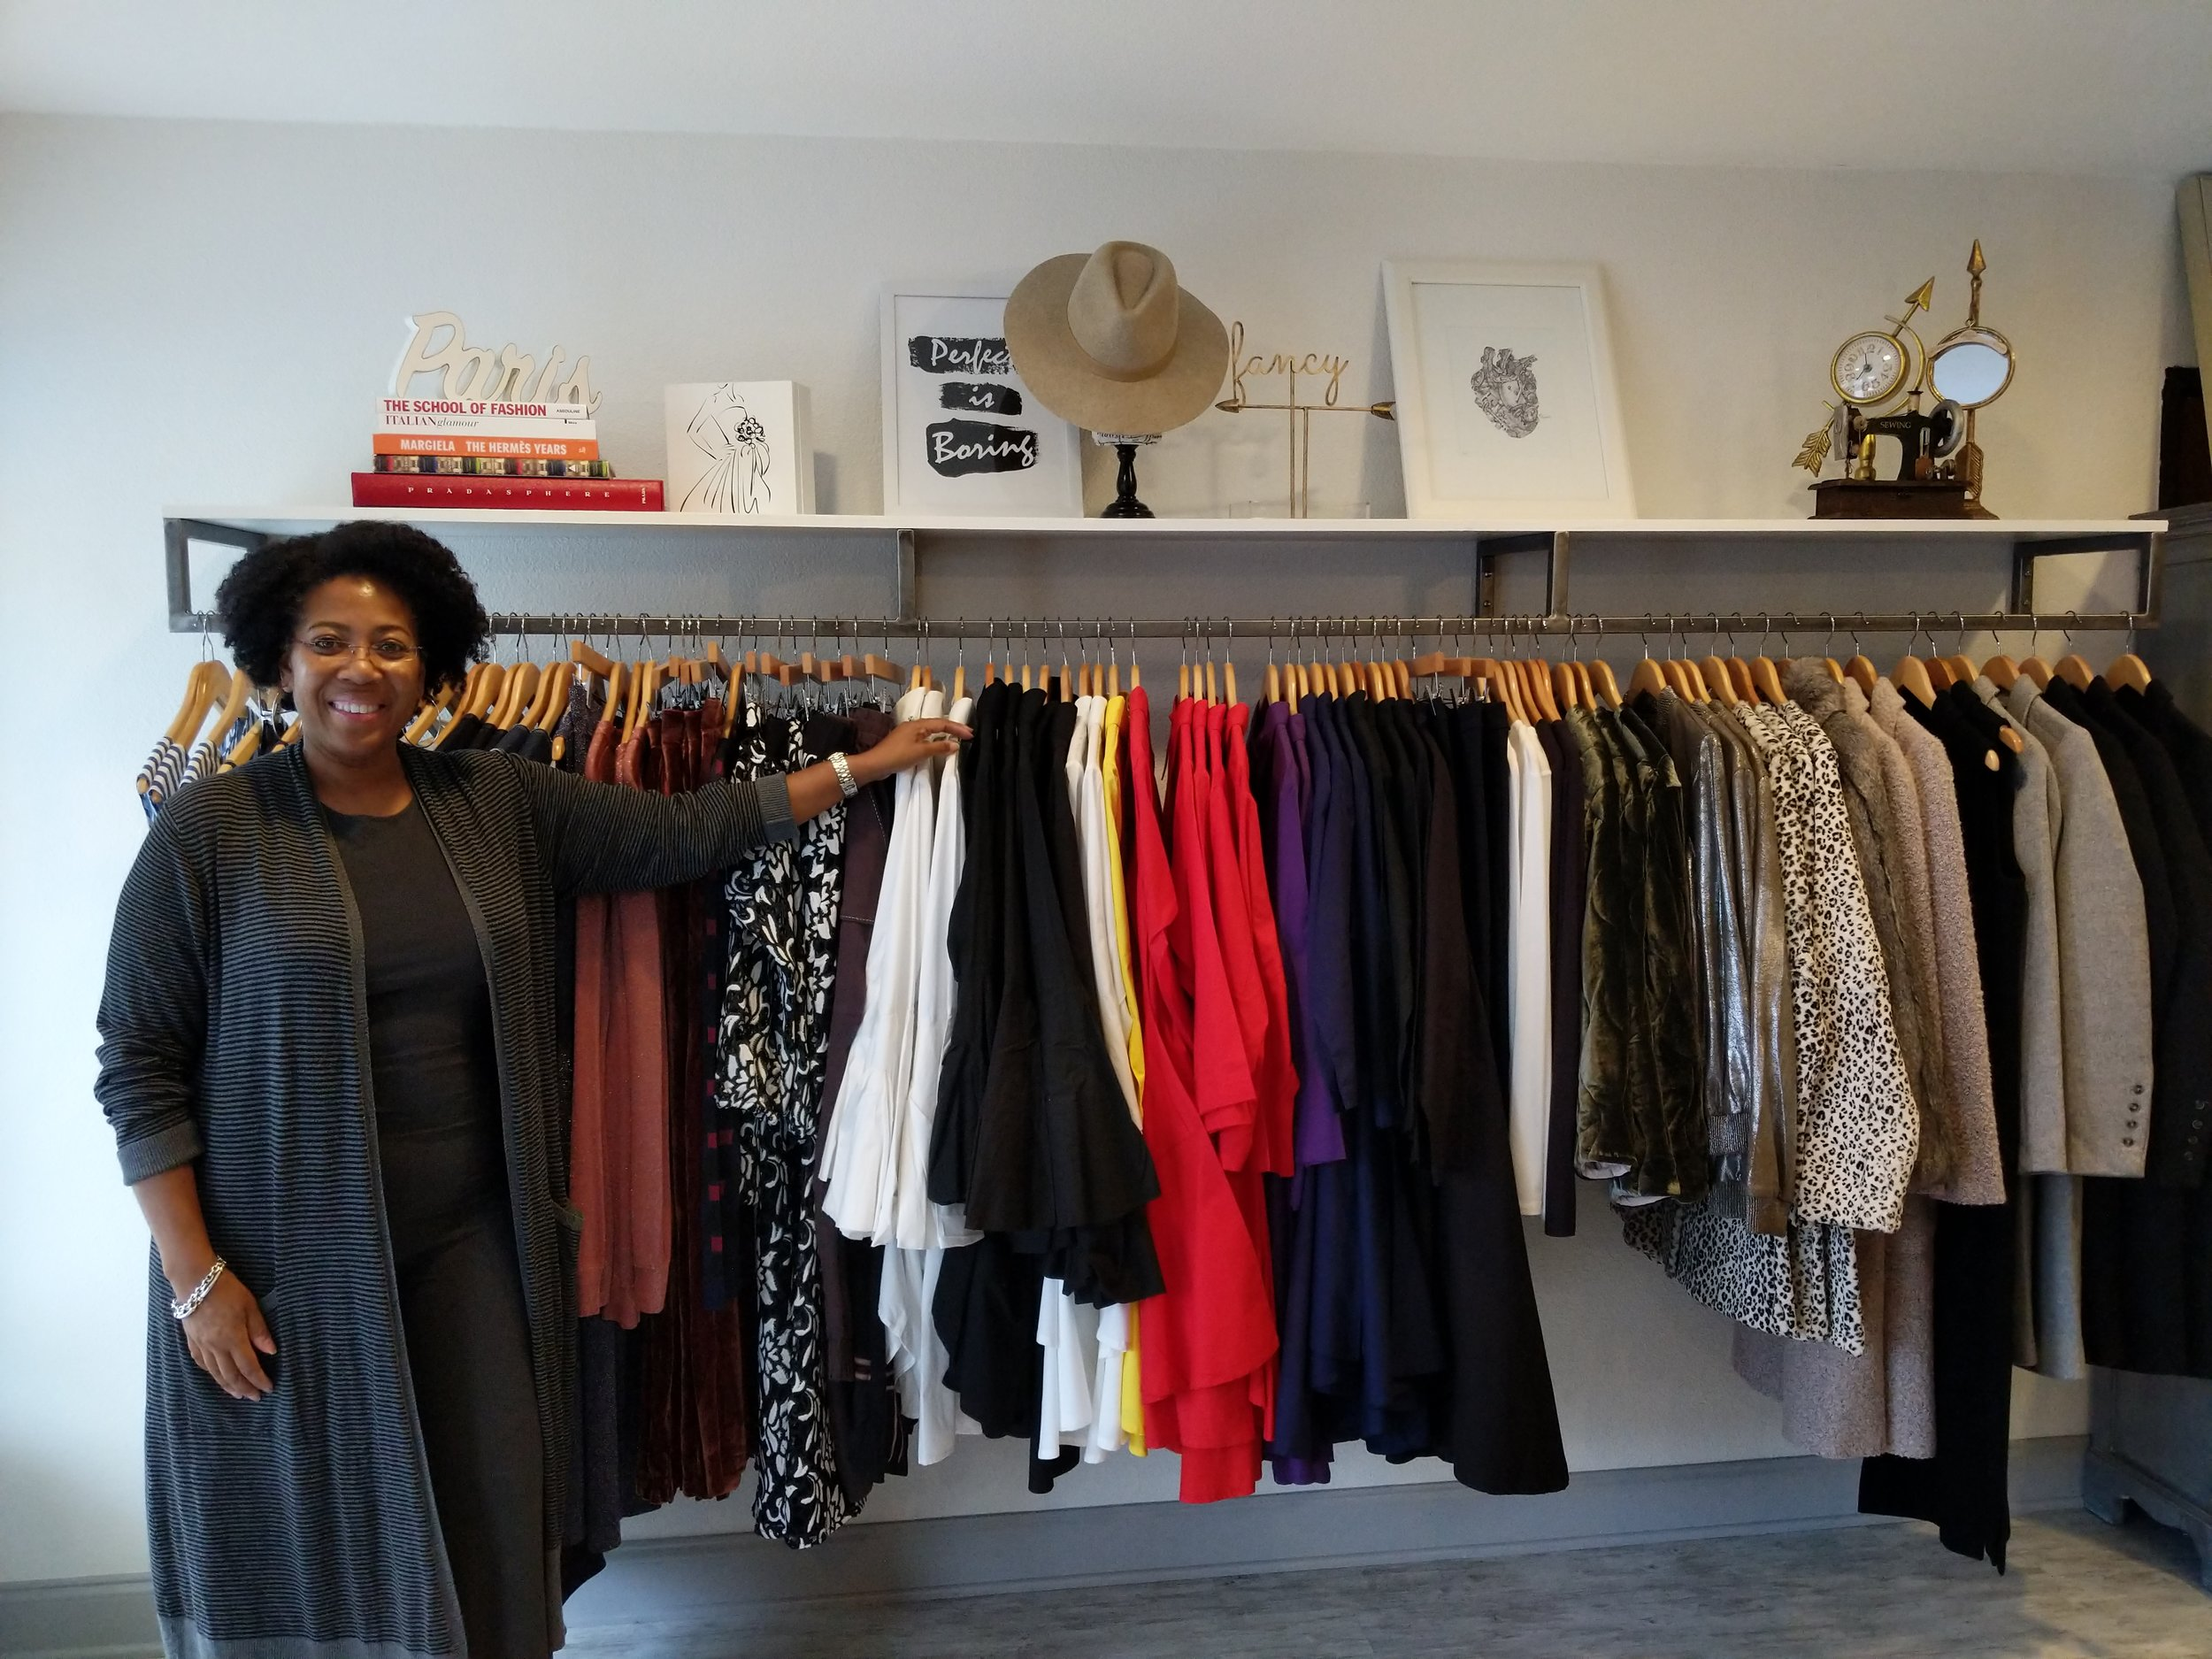 Alta Alexander, founder of Altatudes, shares what it's like to run one of Austin's highest profile boutiques while incorporating giving back to the Austin community through her Hearts & Handbags program.